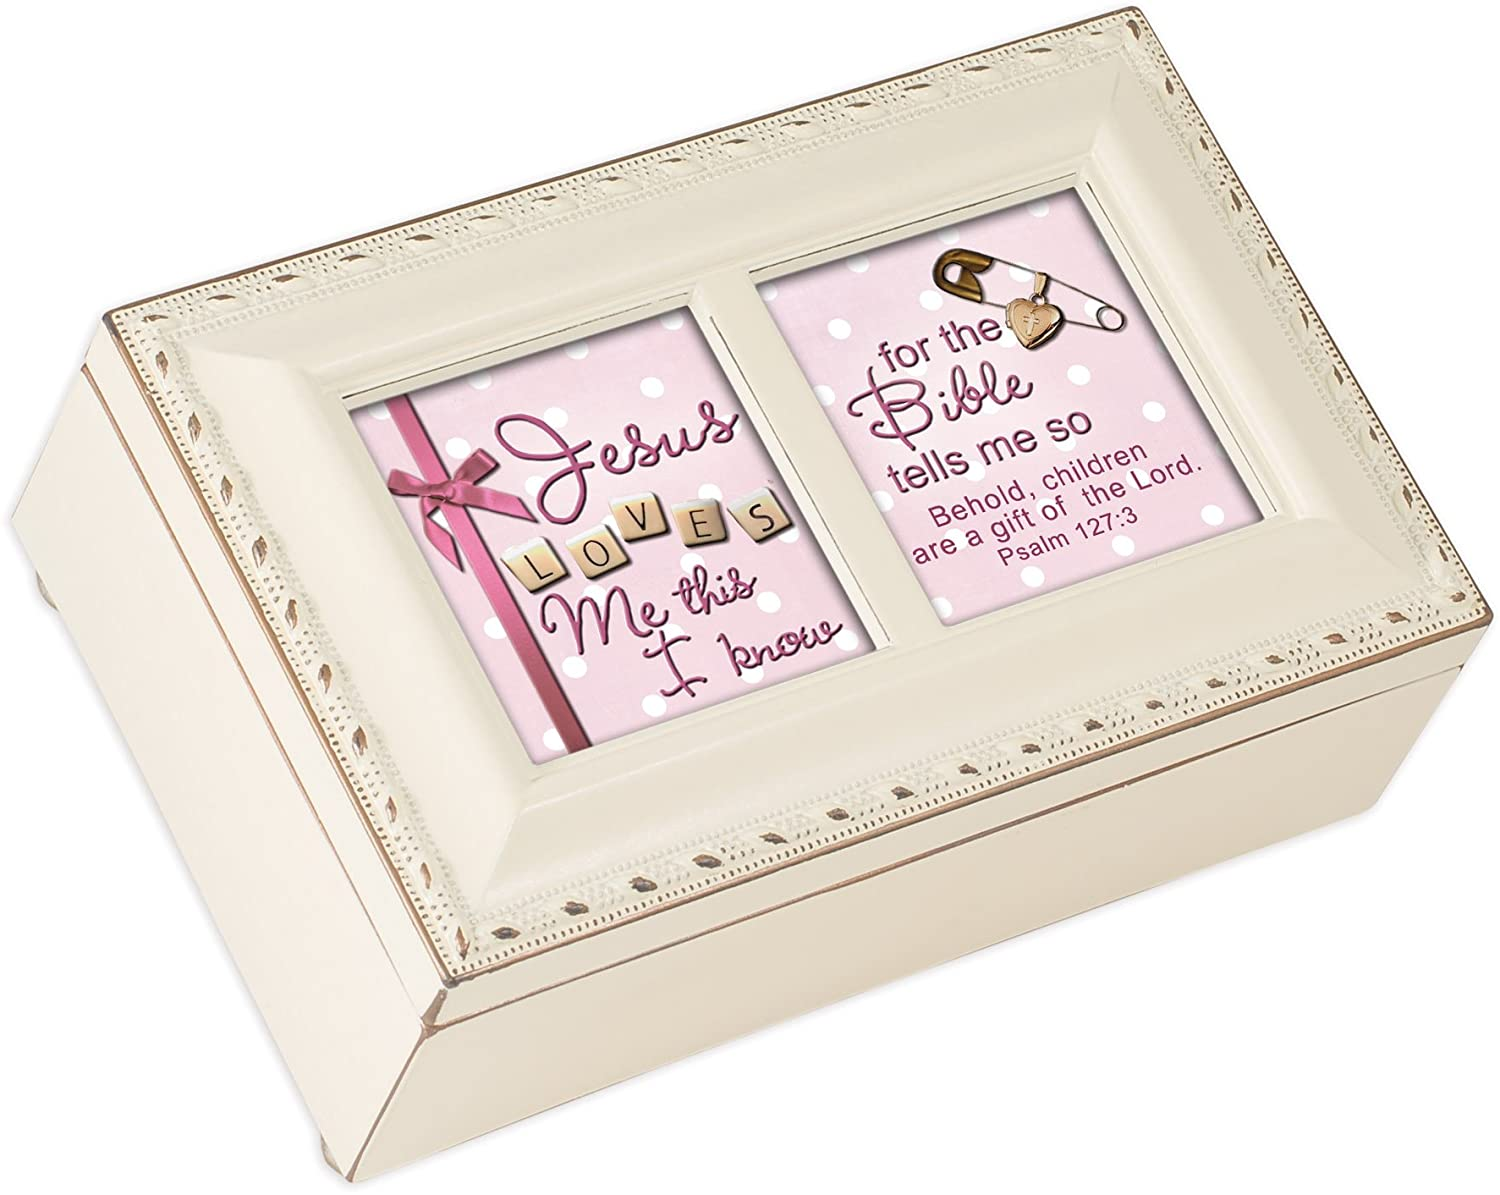 Cottage Garden This I Know The Bible Tells Me Matte Ivory Jewelry Music Box Plays Jesus Loves Me